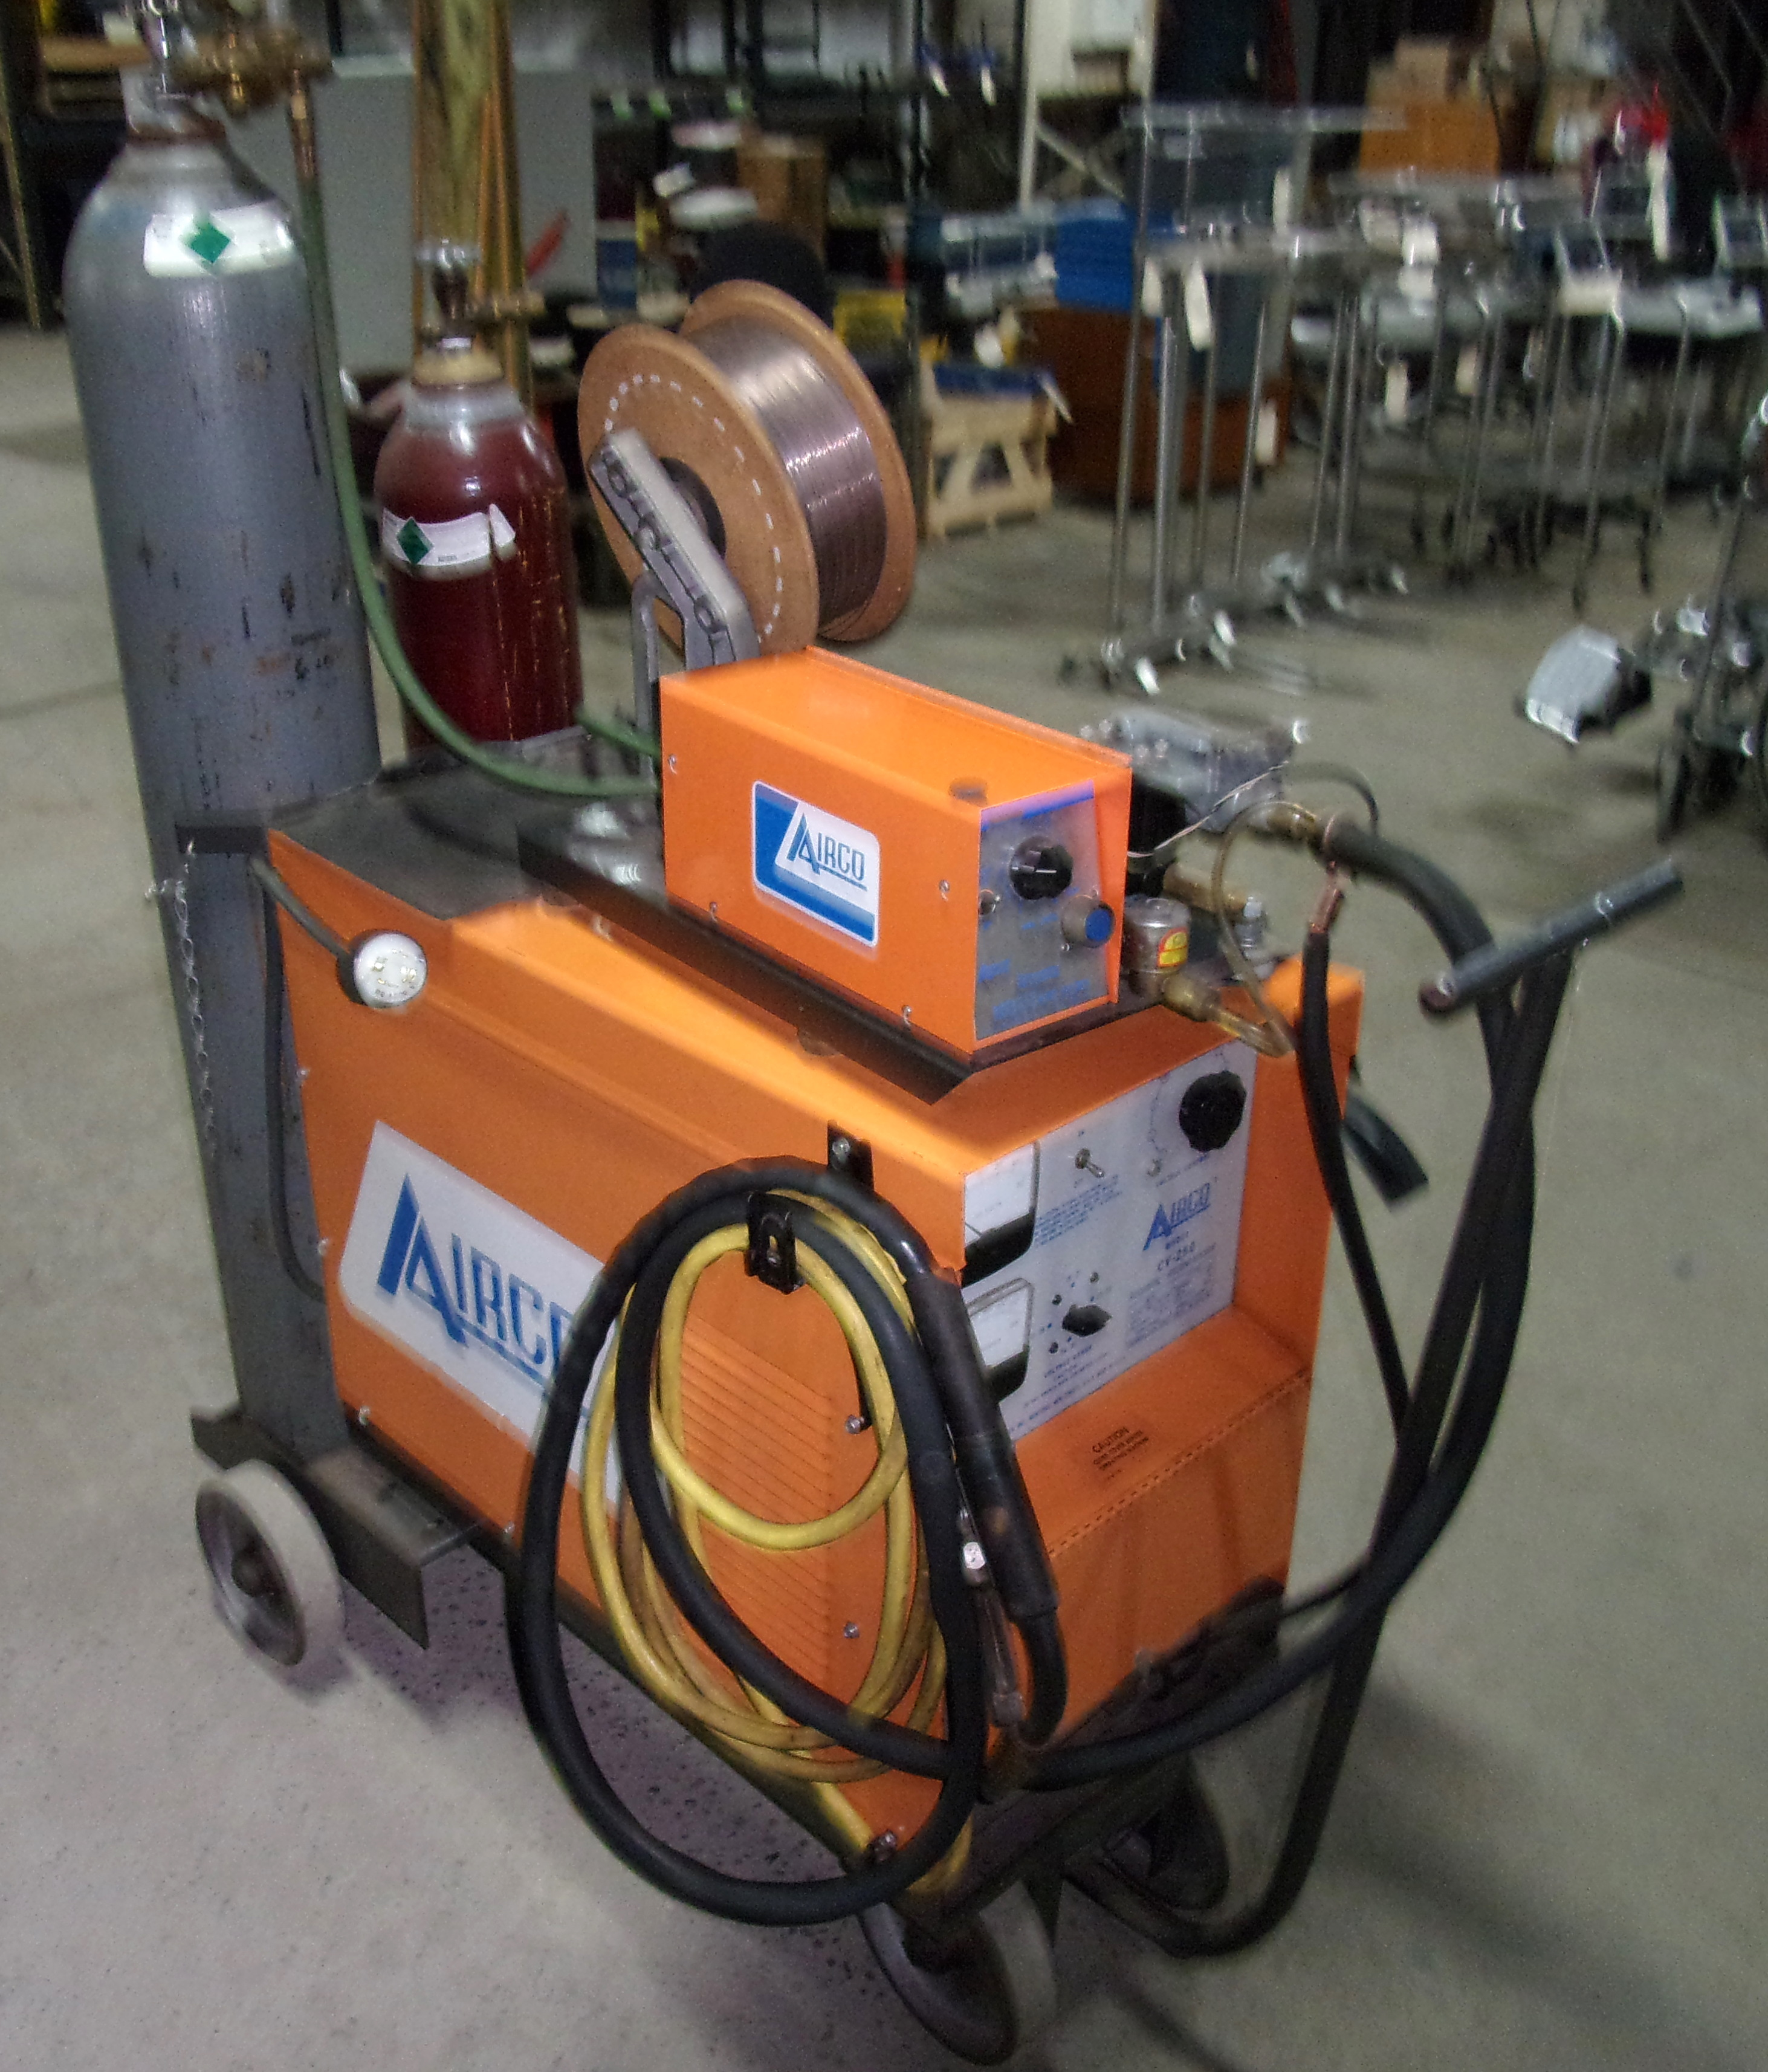 Lot 592A - AIRCO WIRE FEED WELDER, MODEL CV250, 250-AMP , S